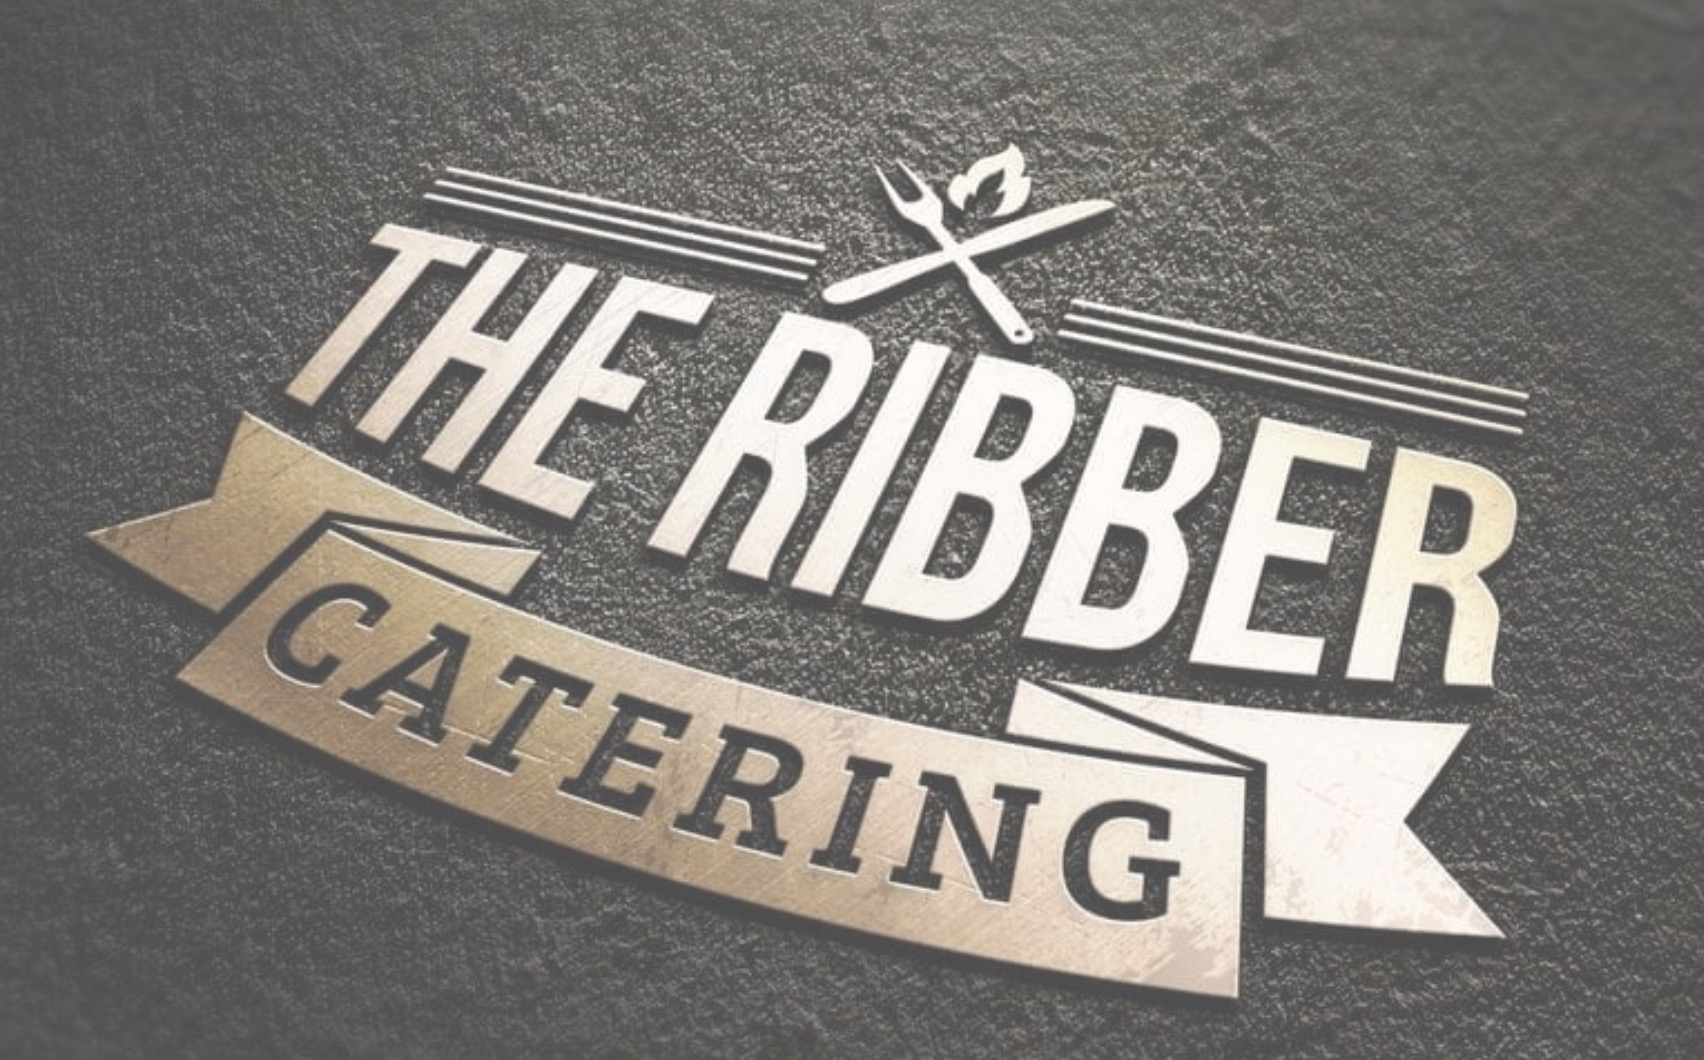 The Ribber | Wedding catering in Montrose, Colorado featured on WED West Slope - a directory for wedding vendors.